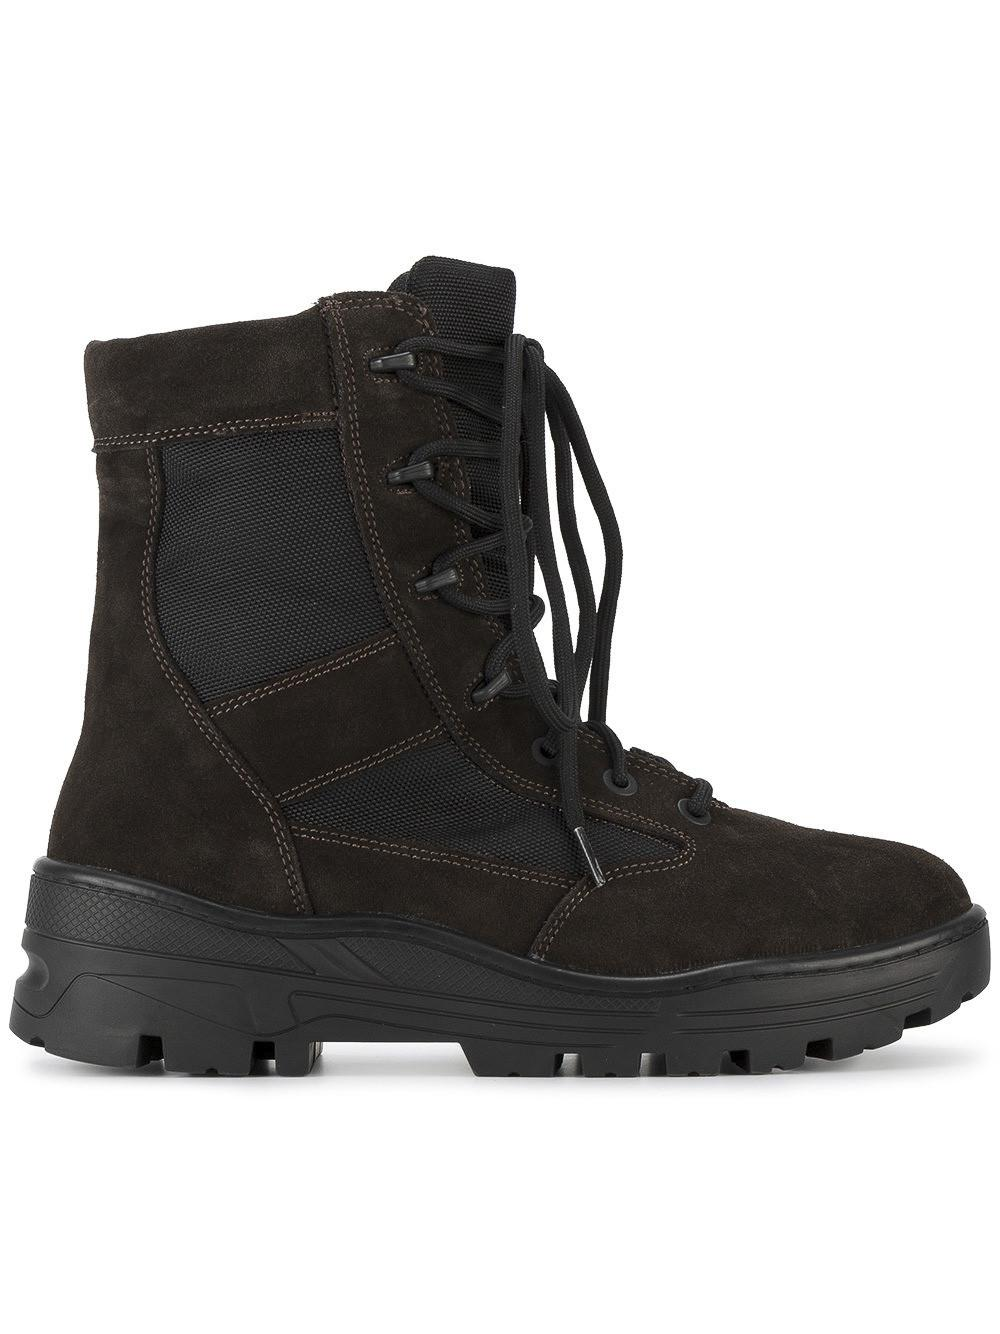 3ad695795f7f6 Yeezy Lace Up Combat Boots in Black for Men - Save 3% - Lyst